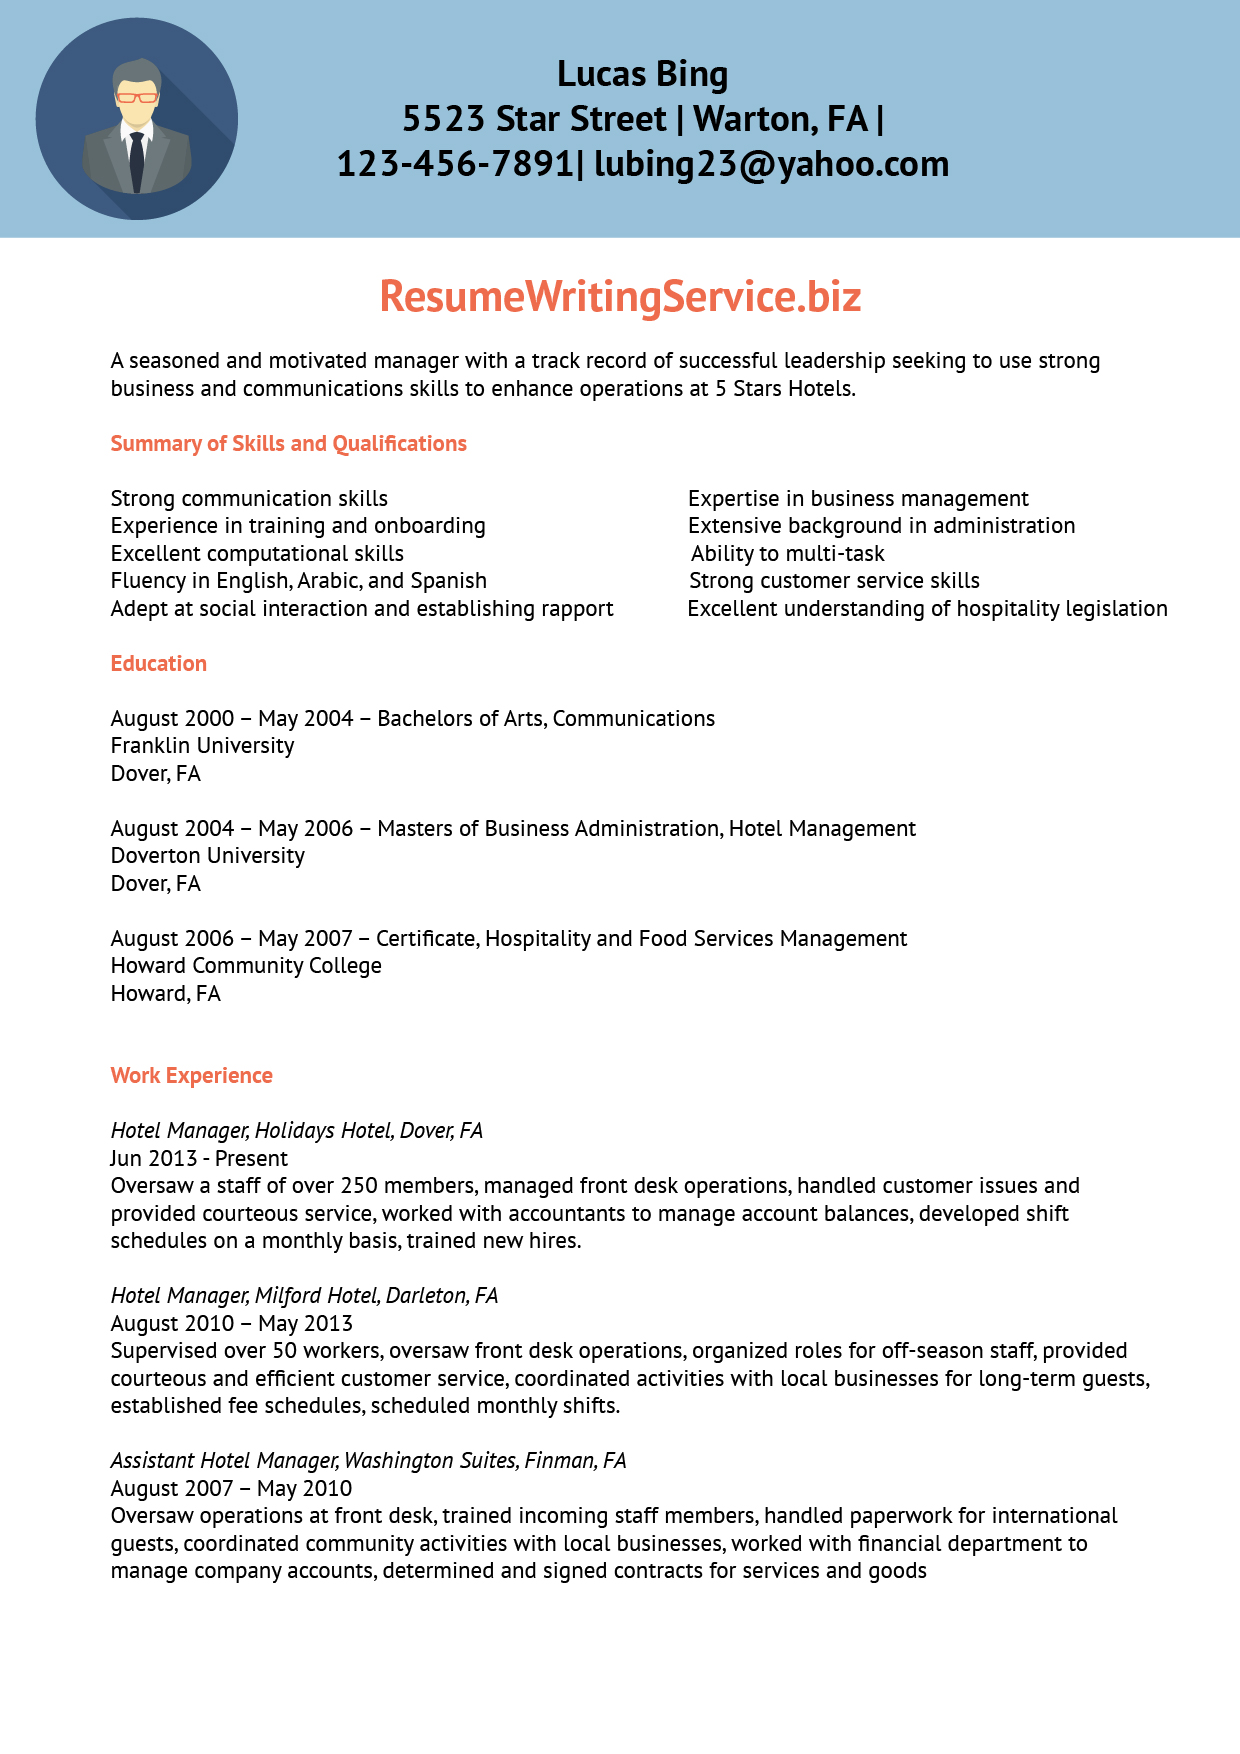 https://www.resumewritingservice.biz/wp-content/uploads/2010/12/hotel-manager-resume-sample.jpg